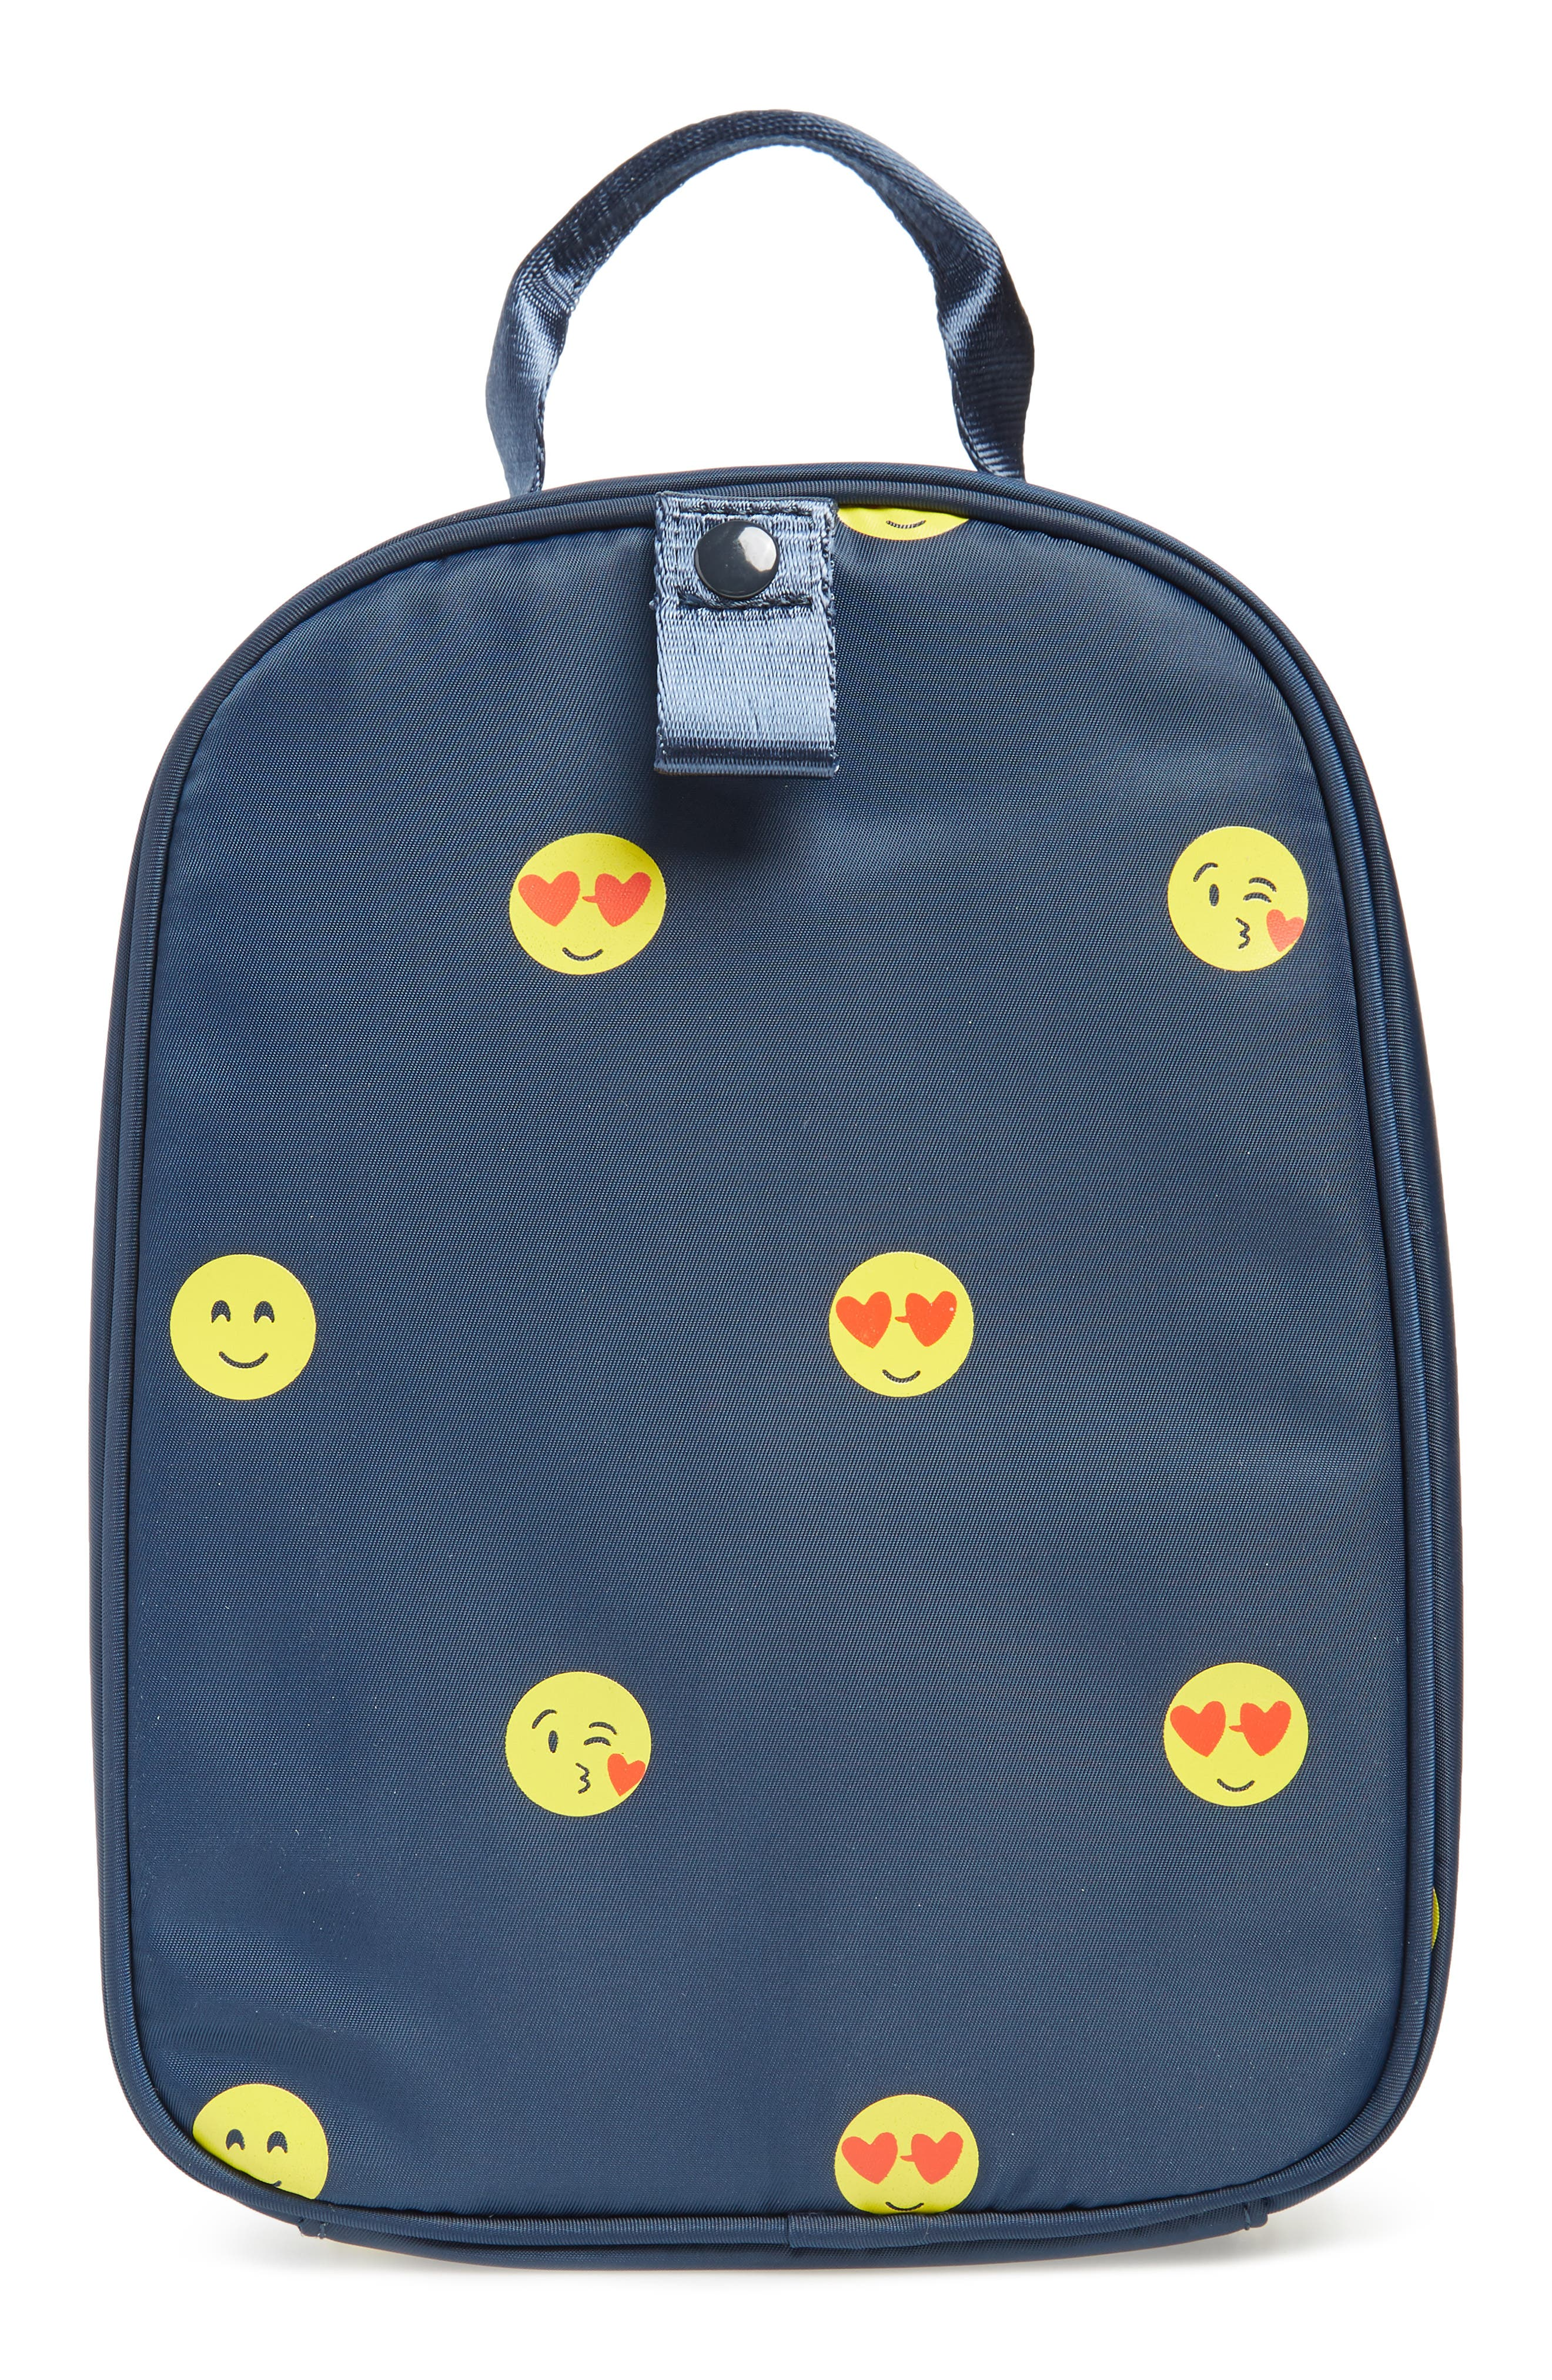 Emoji Lunch Box,                             Alternate thumbnail 2, color,                             400